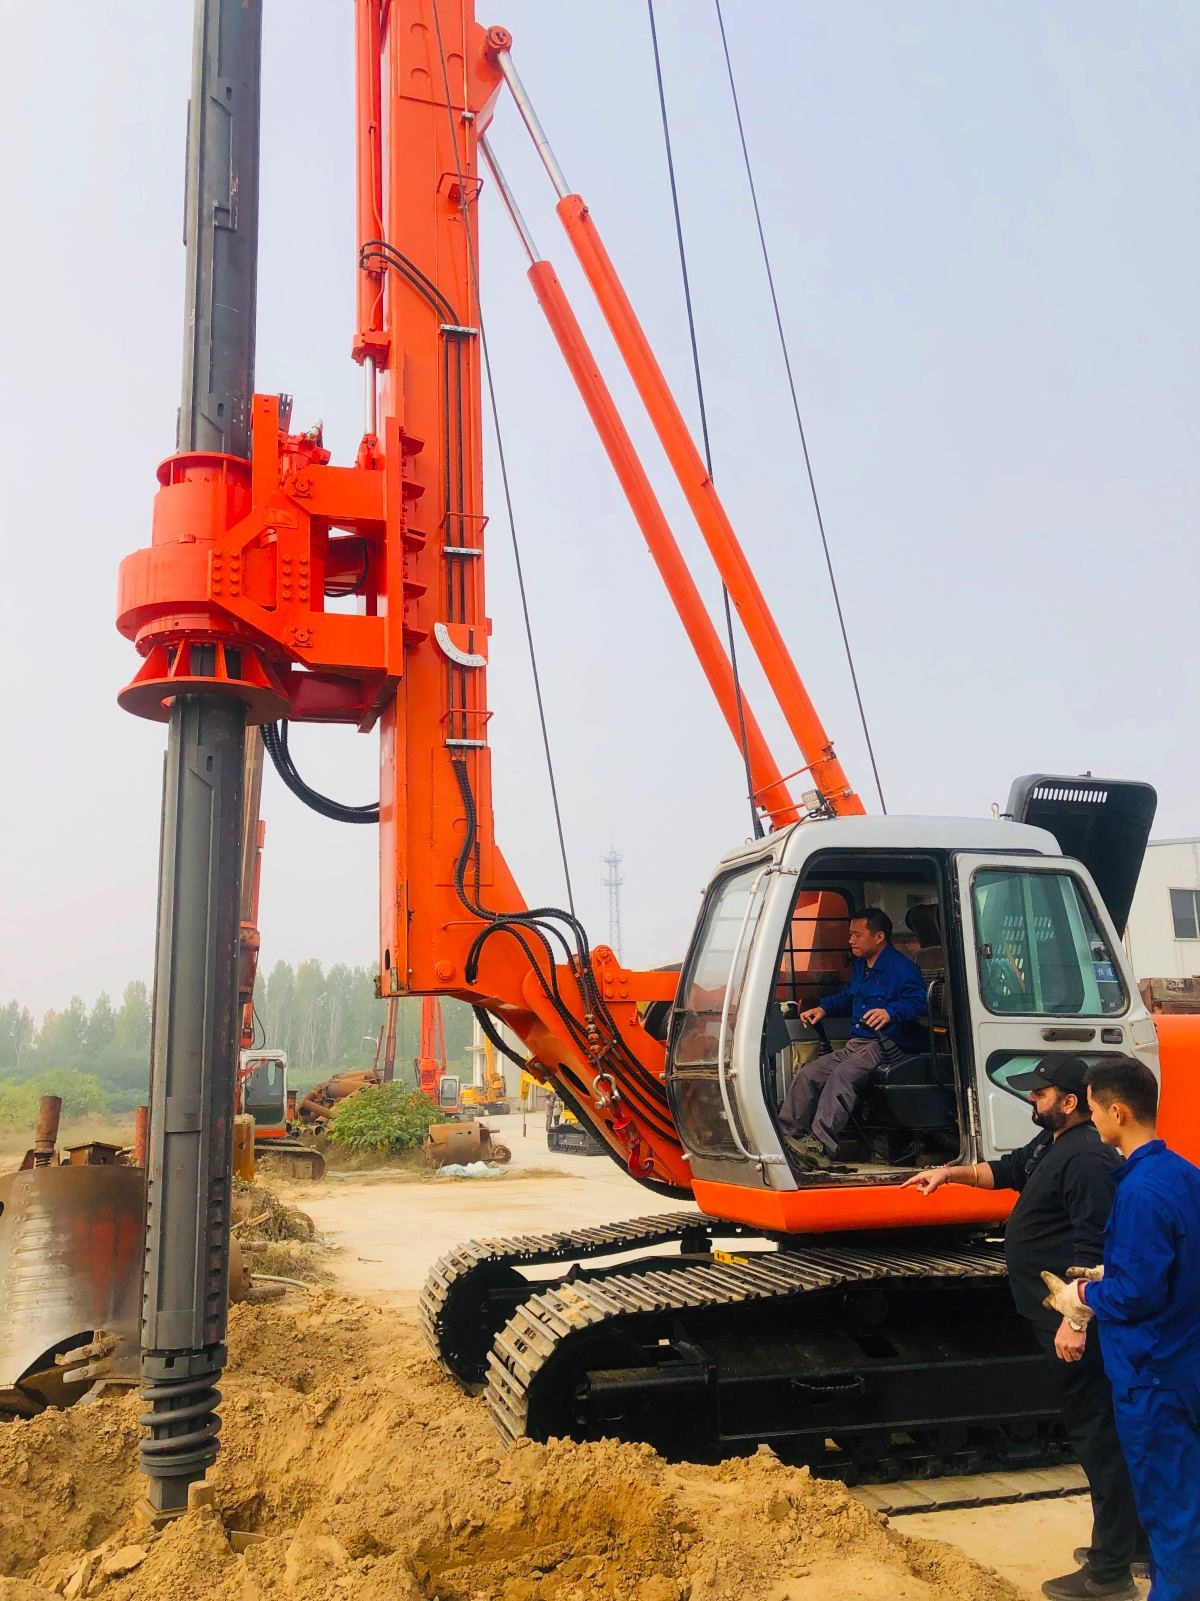 Beyond 2nd Rotary Drilling Rig Reached Mumbai, India